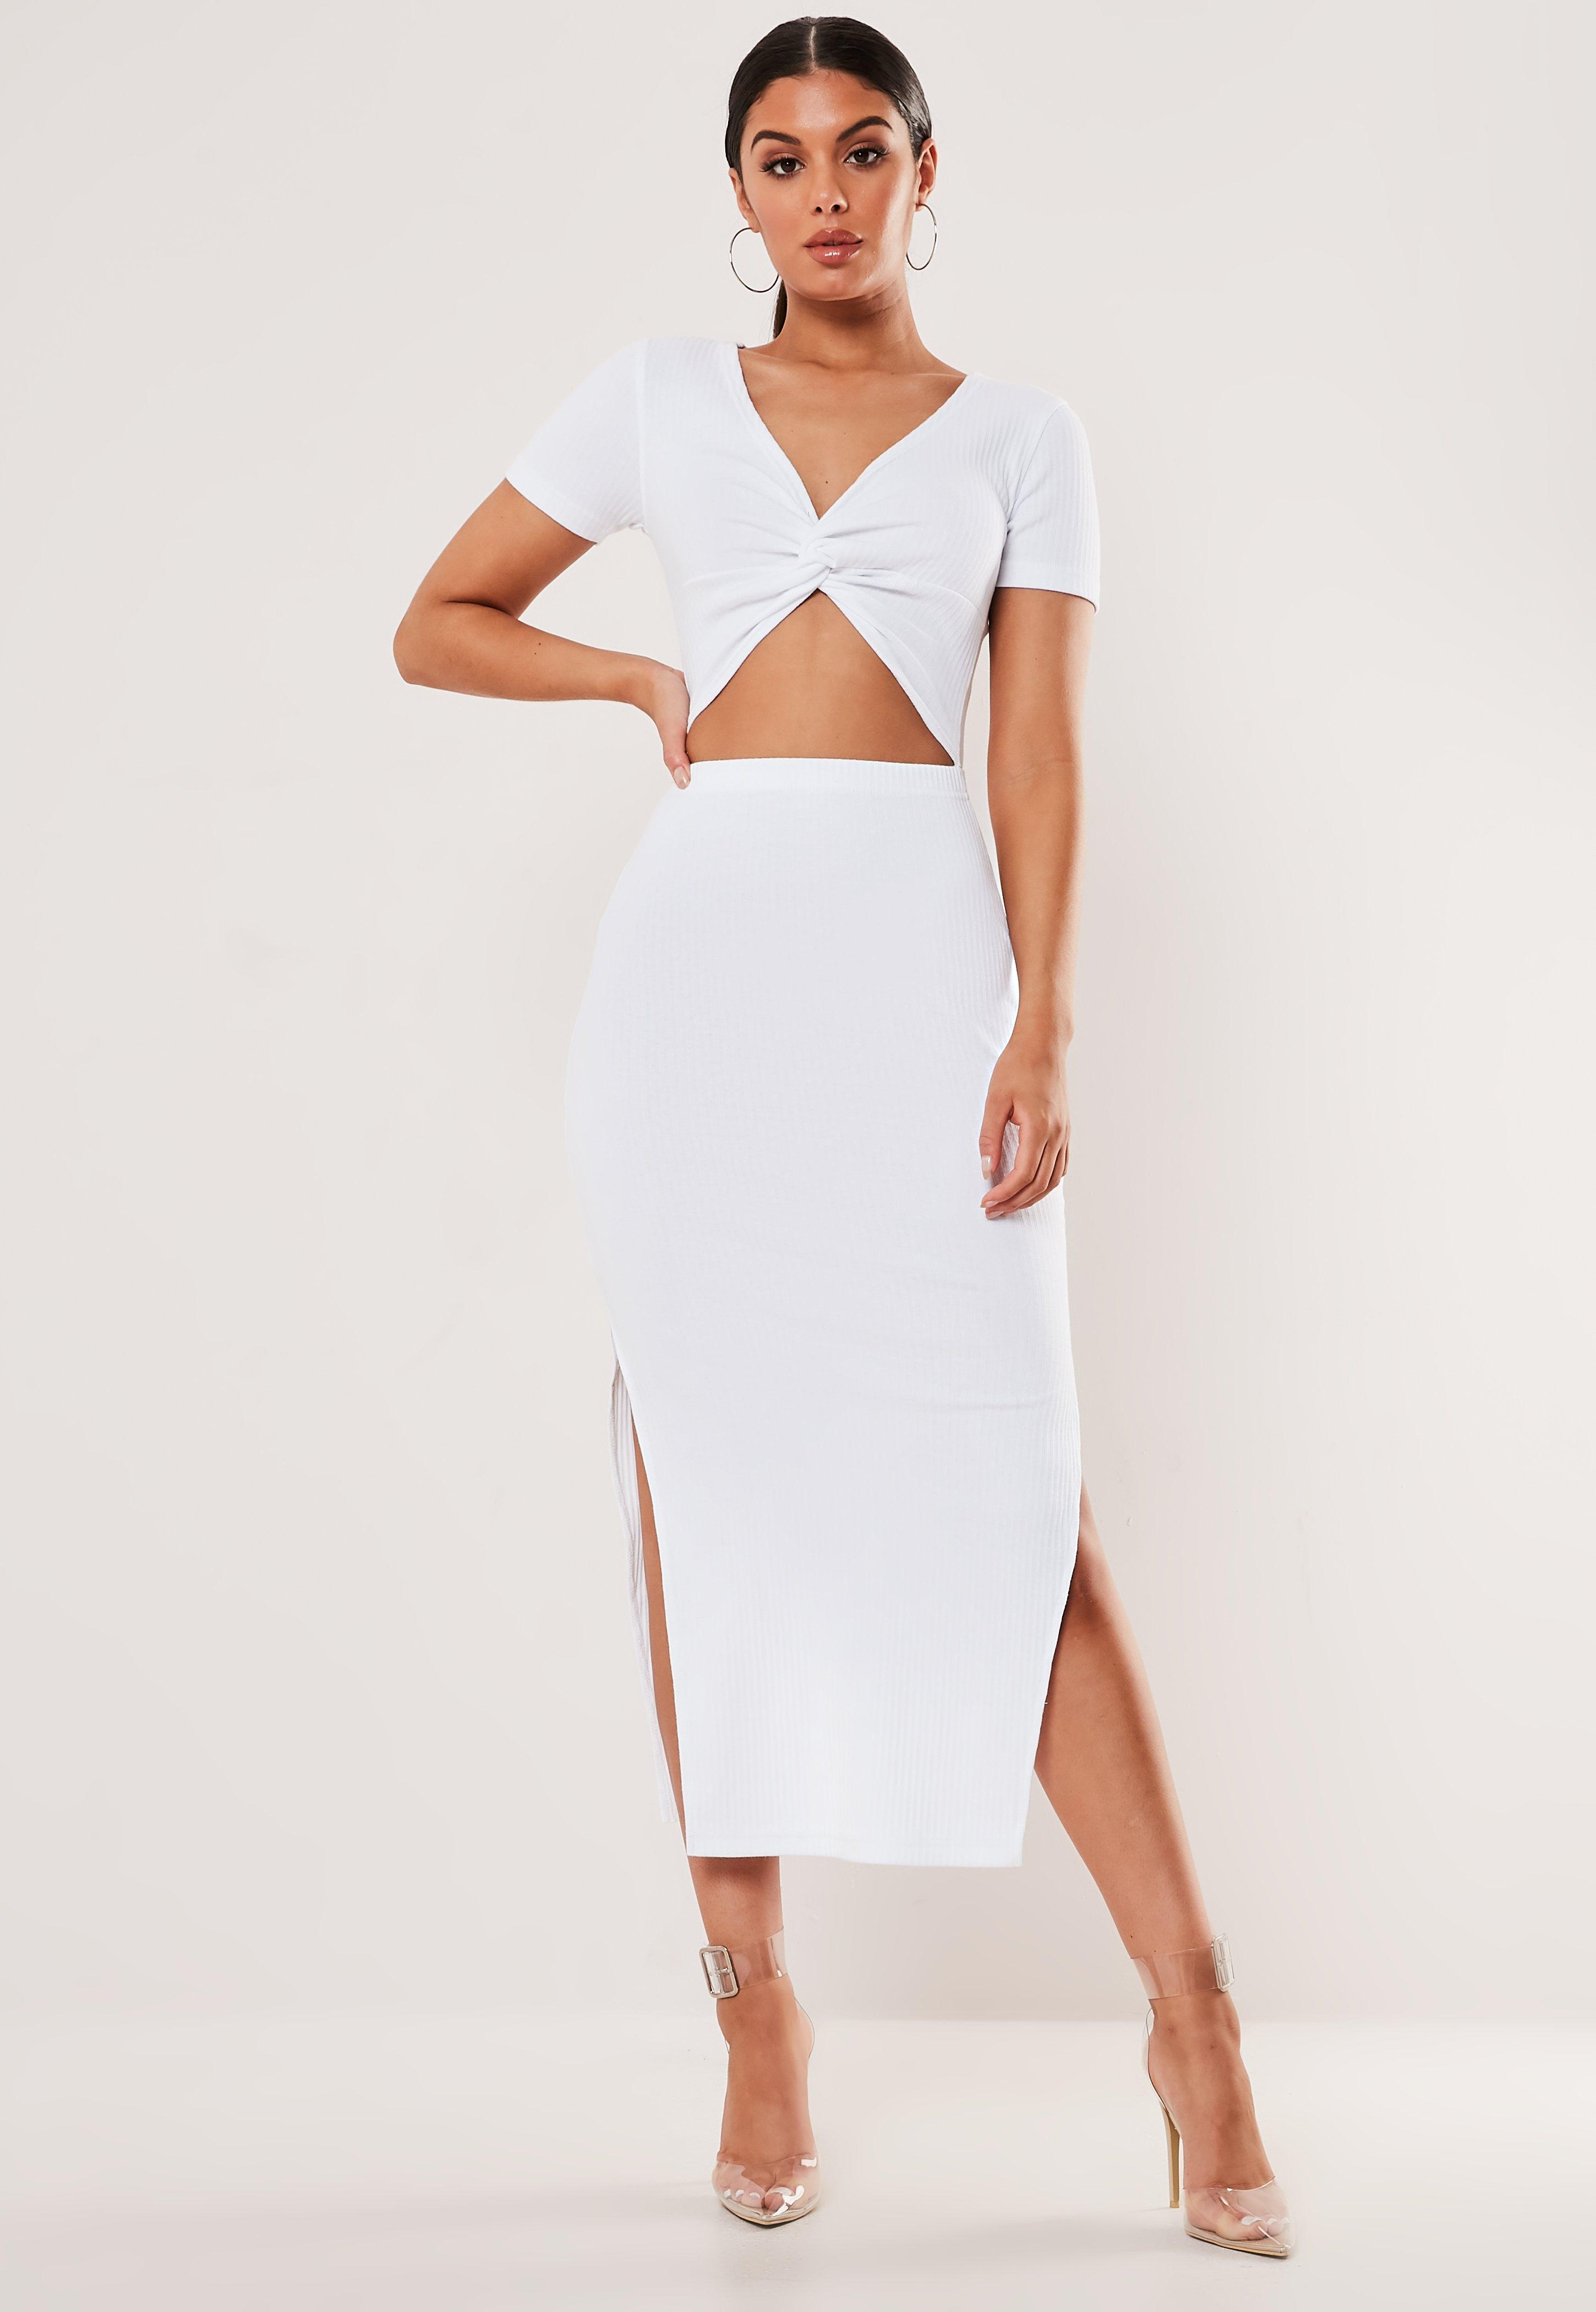 22309845f46b Cut Out Dresses | Cut Out Side Dresses - Missguided